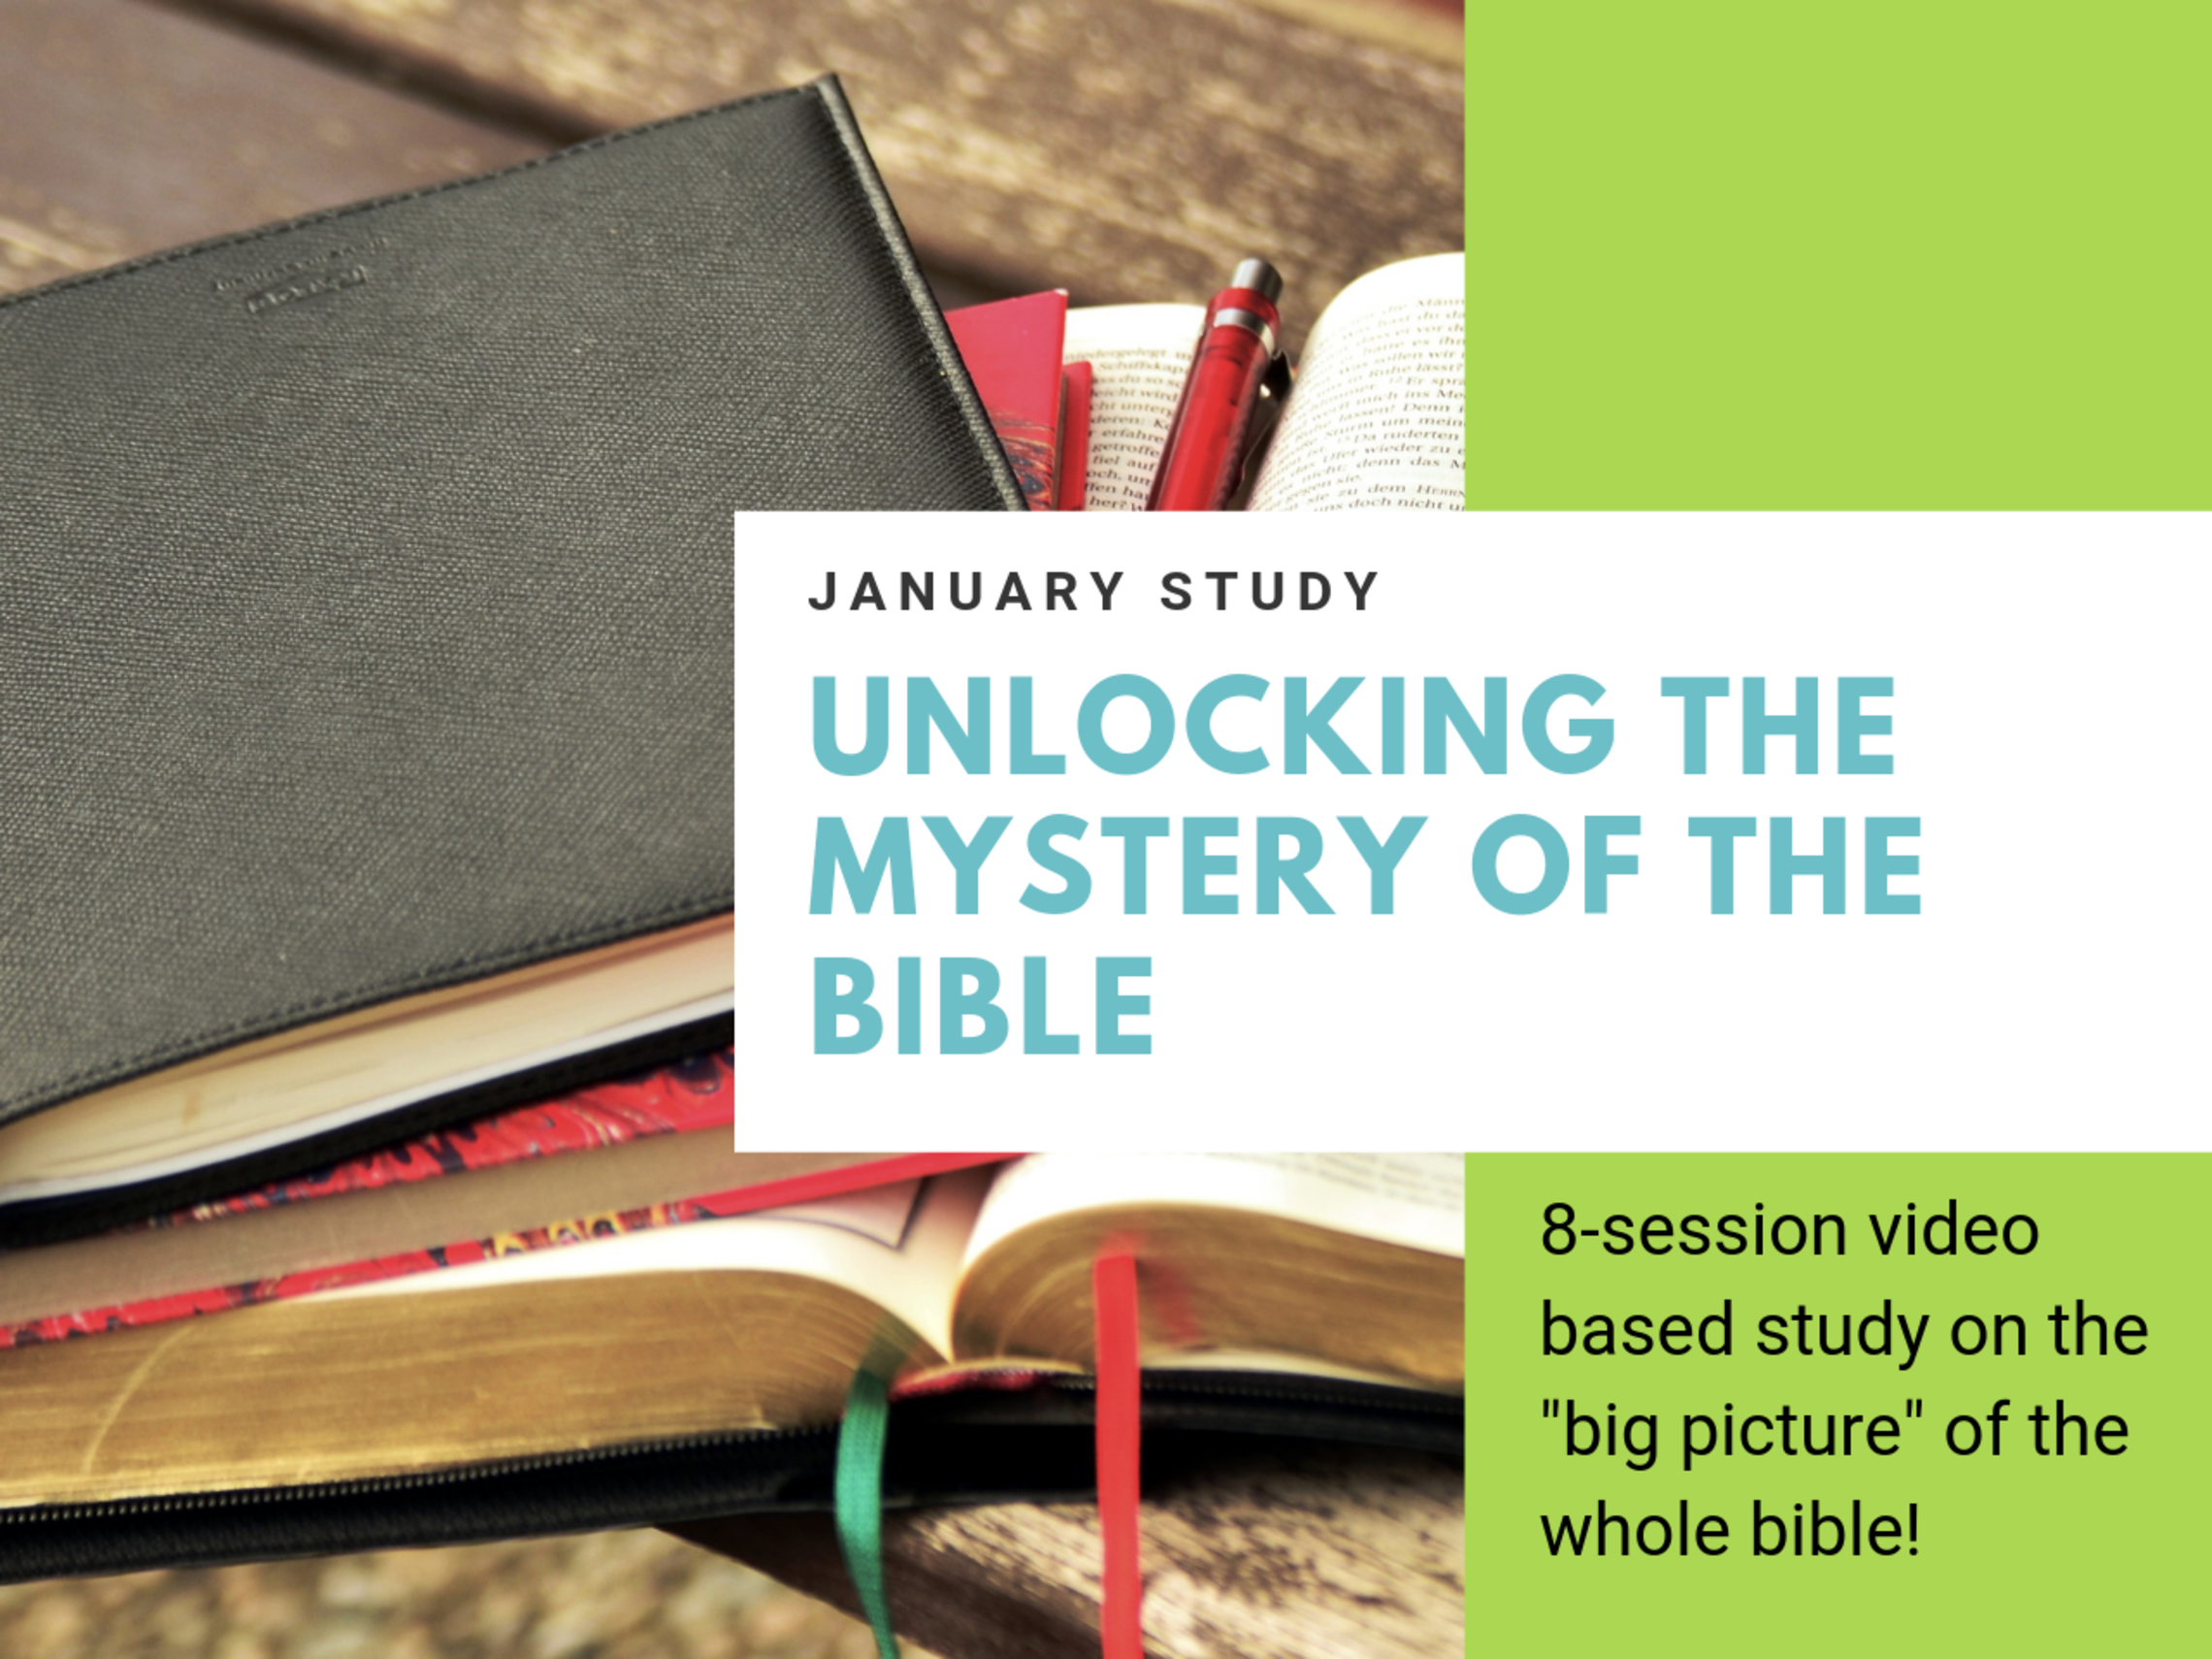 JANUARY Unlocking The Mystery Of The Bible